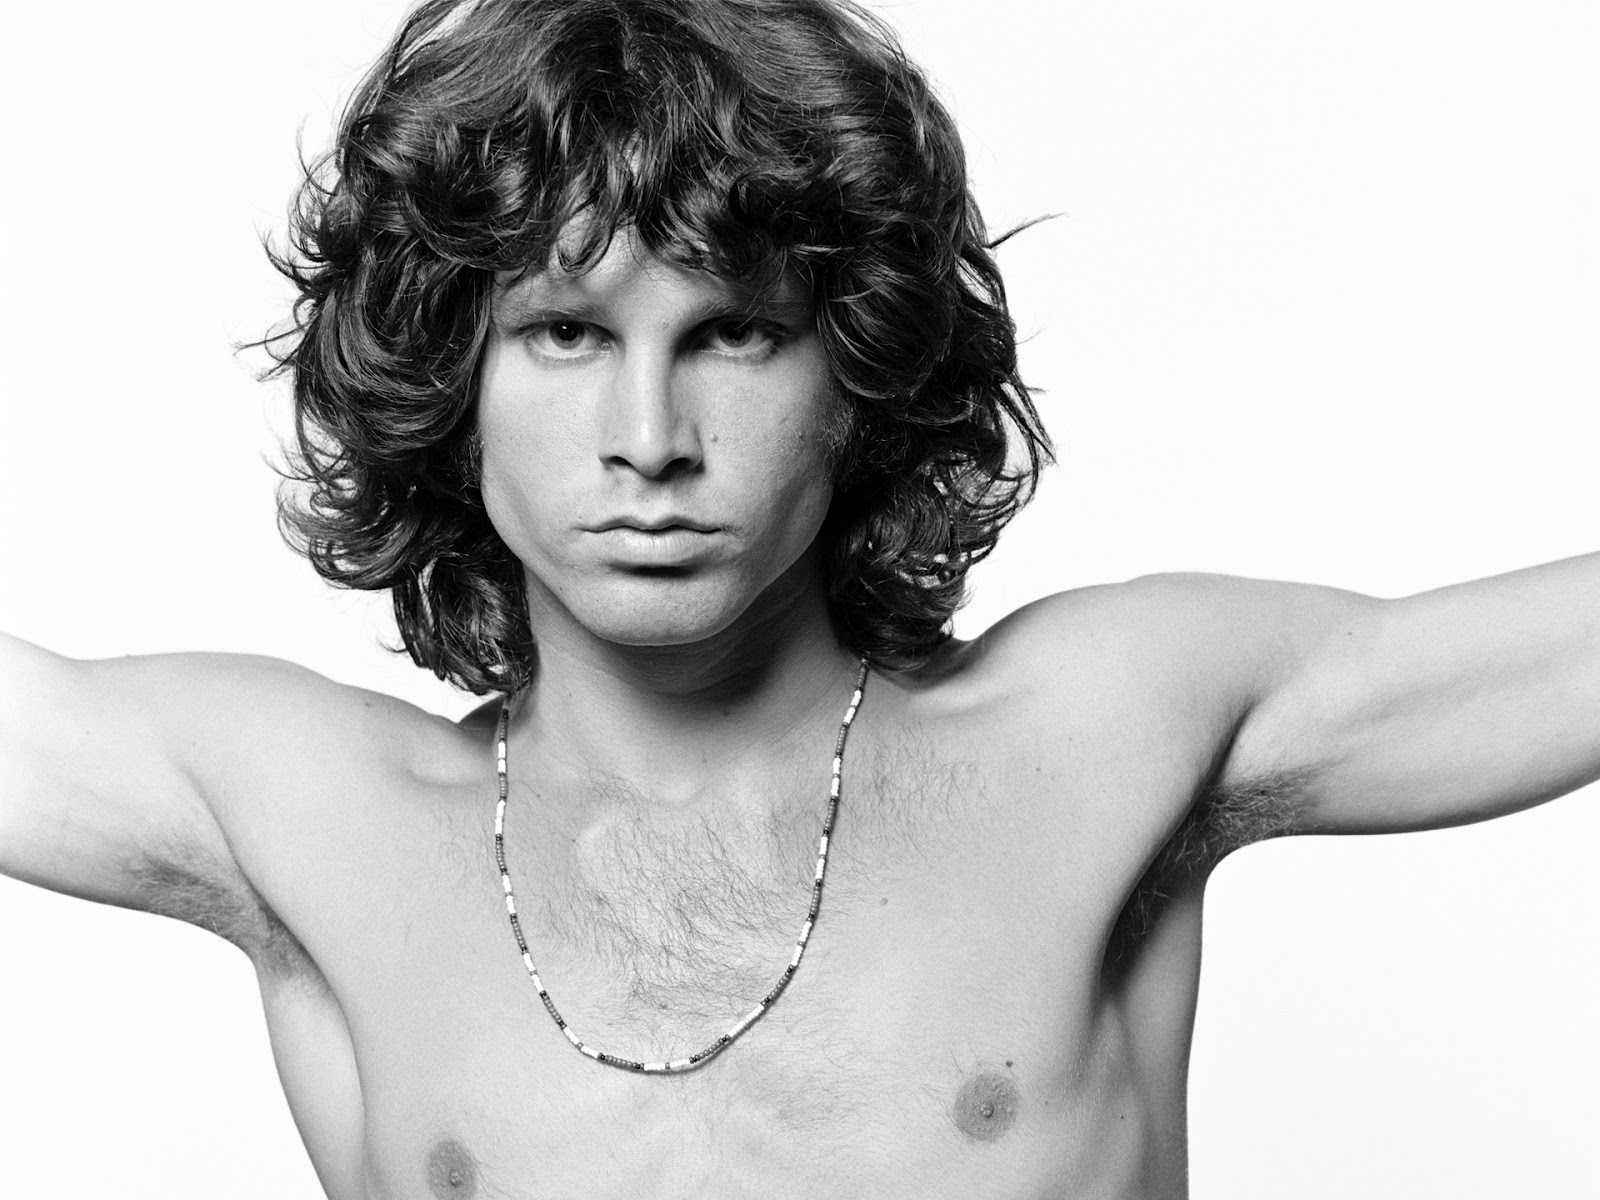 http://4.bp.blogspot.com/-iWoJsDTV8J4/UCxez9T8L7I/AAAAAAAAF1s/Z4FHNbQLZ7U/s1600/Jim-Morrison-Wallpapers-The-Doors-Wallpaper-Photohdmusic.jpg